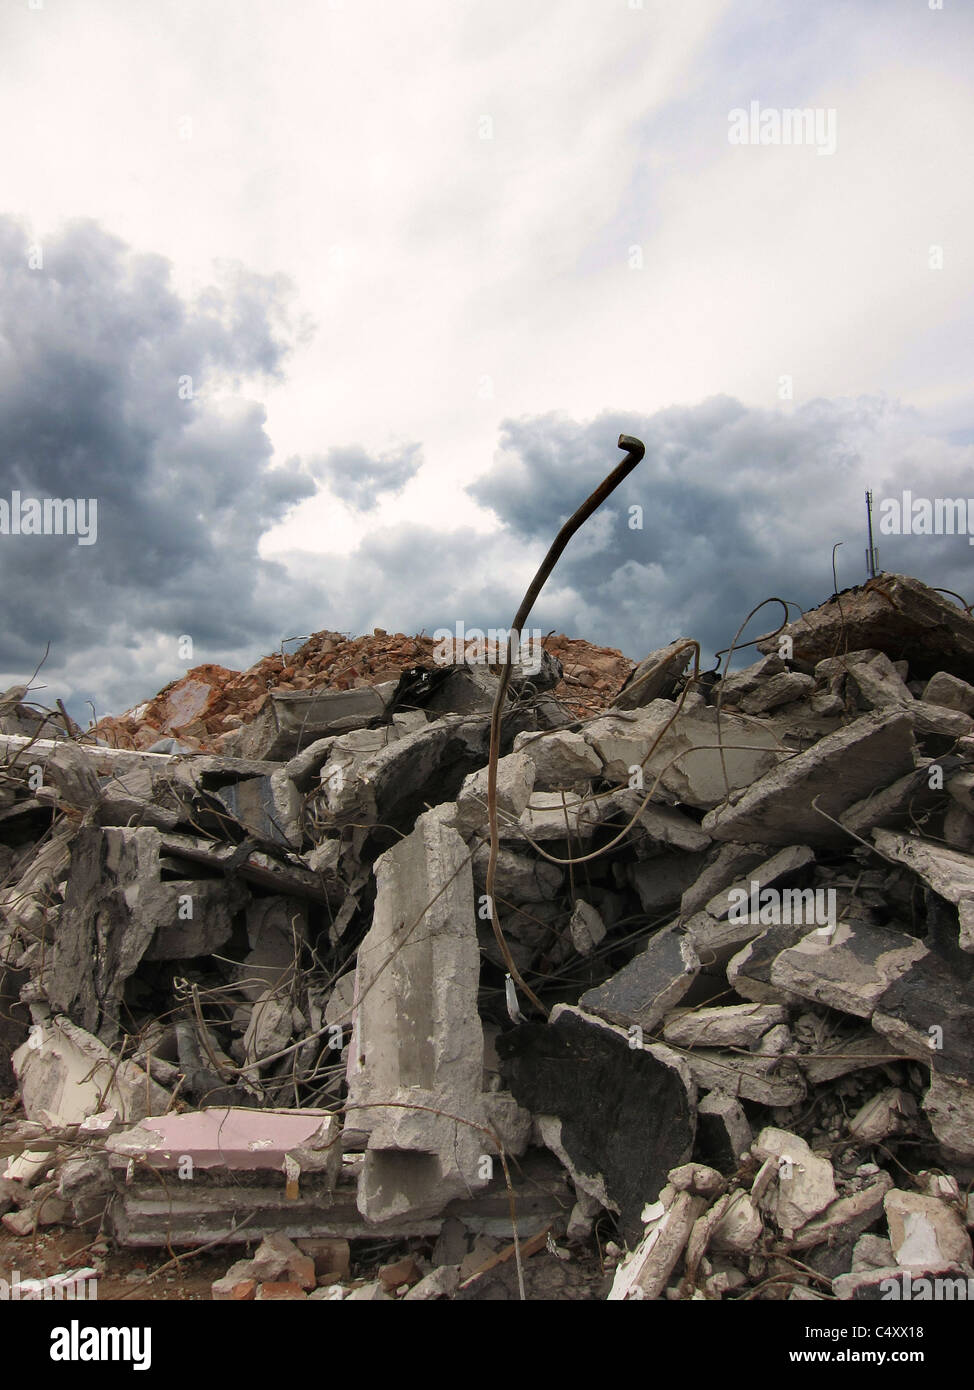 Debris from a demolished building - Stock Image